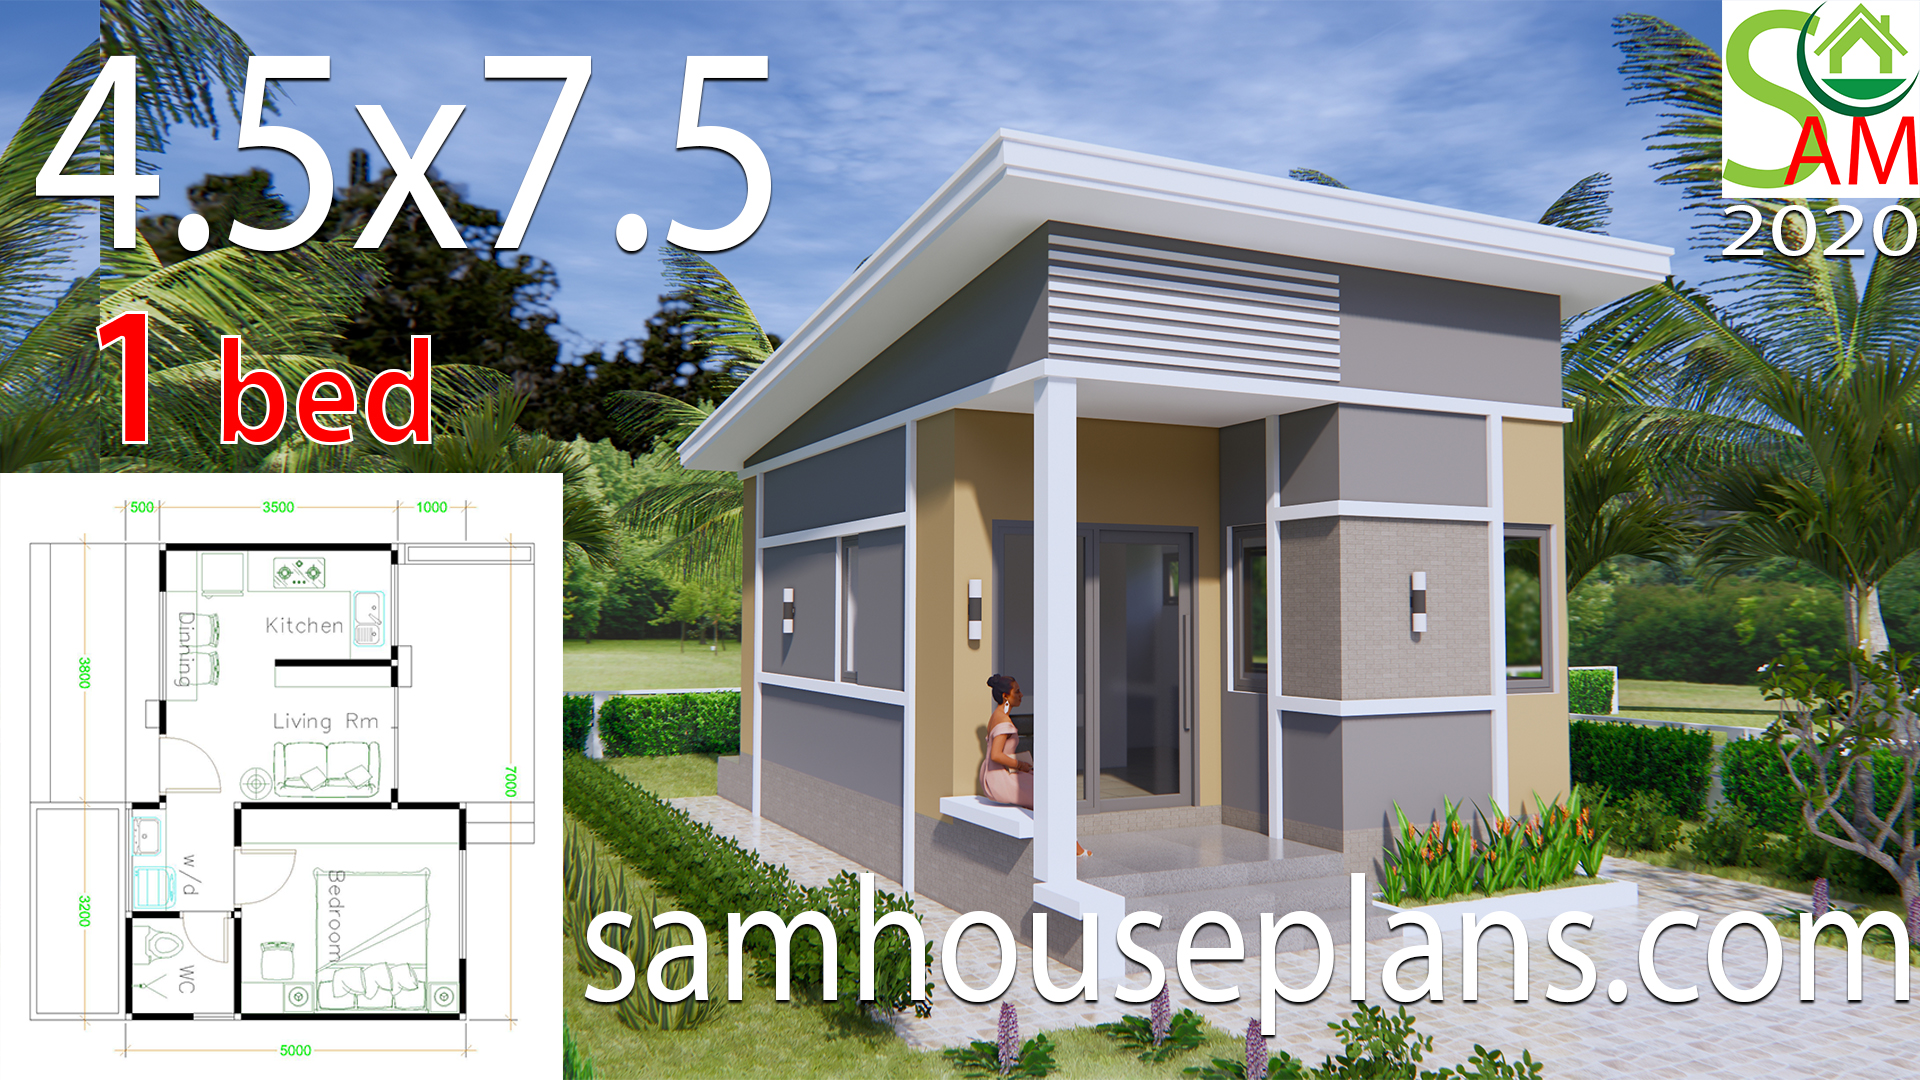 Small House Plans 4 5x7 5 With One Bed Shed Roof Samhouseplans